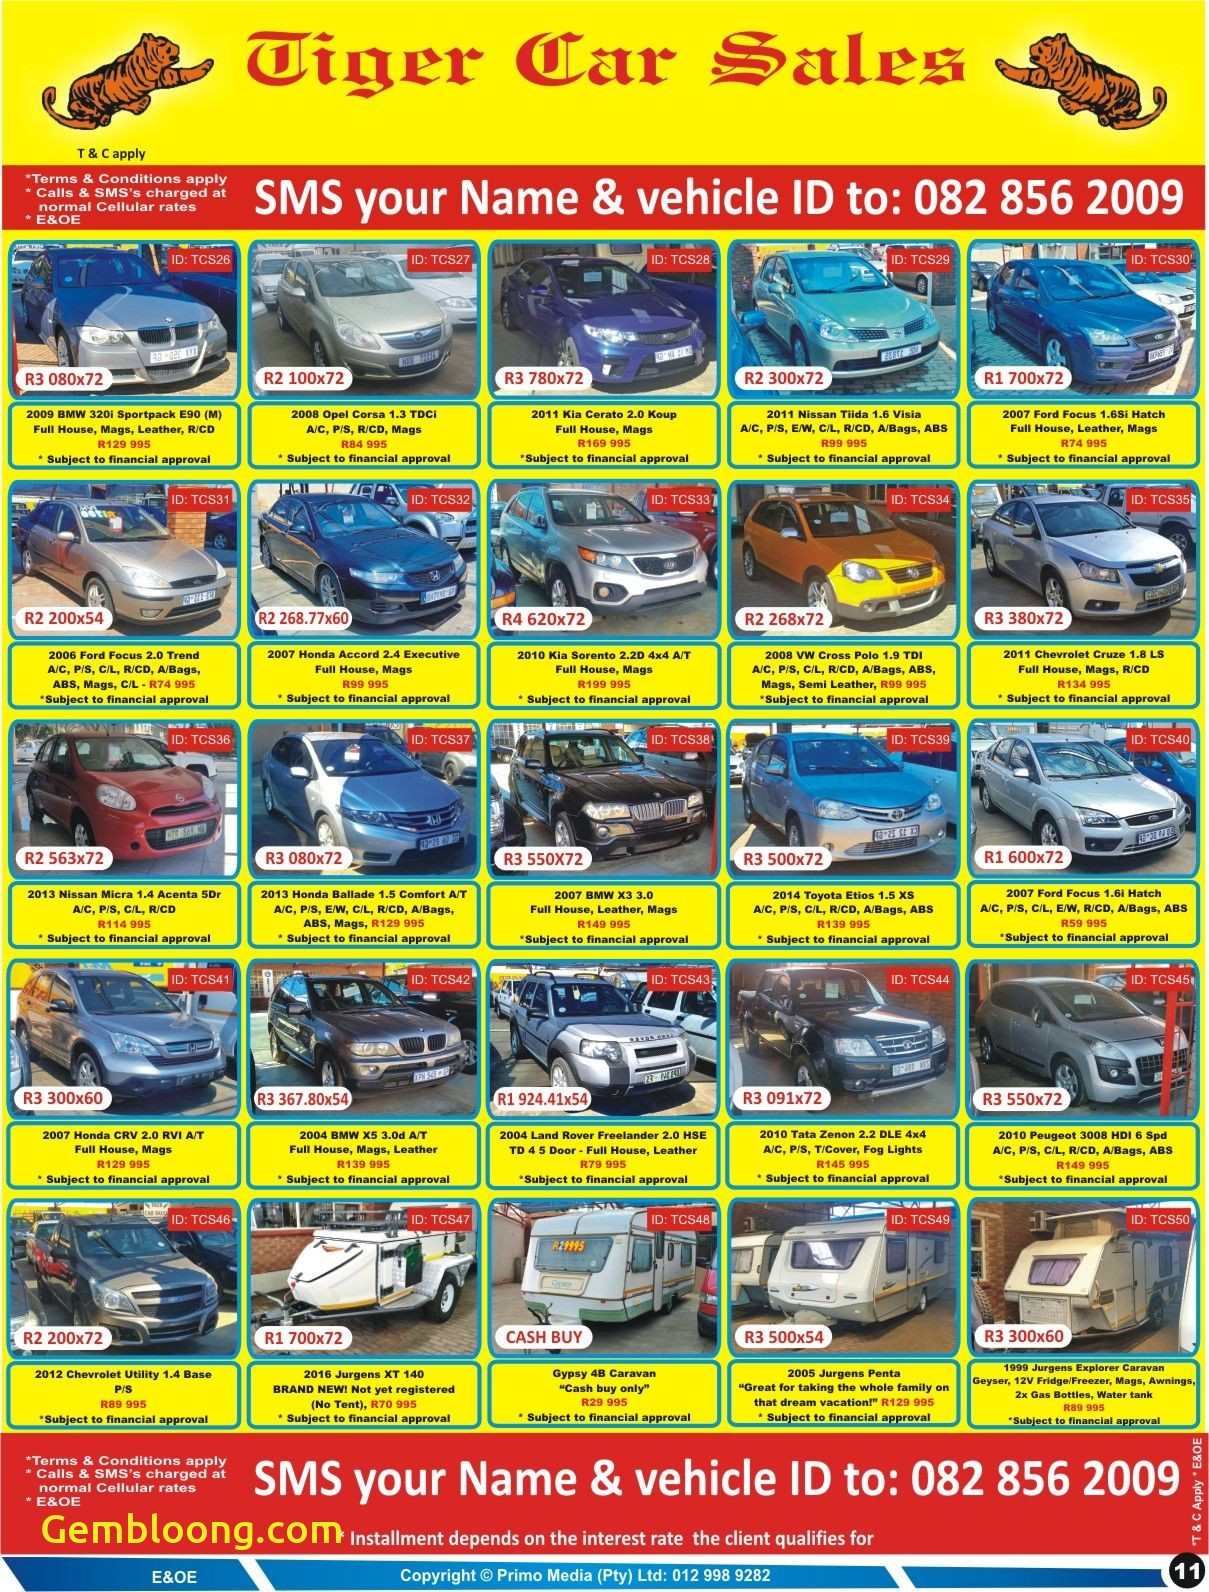 Cars for Sale by Rental Unique today is Chooseday so Dont Miss Out Choose Your Car at